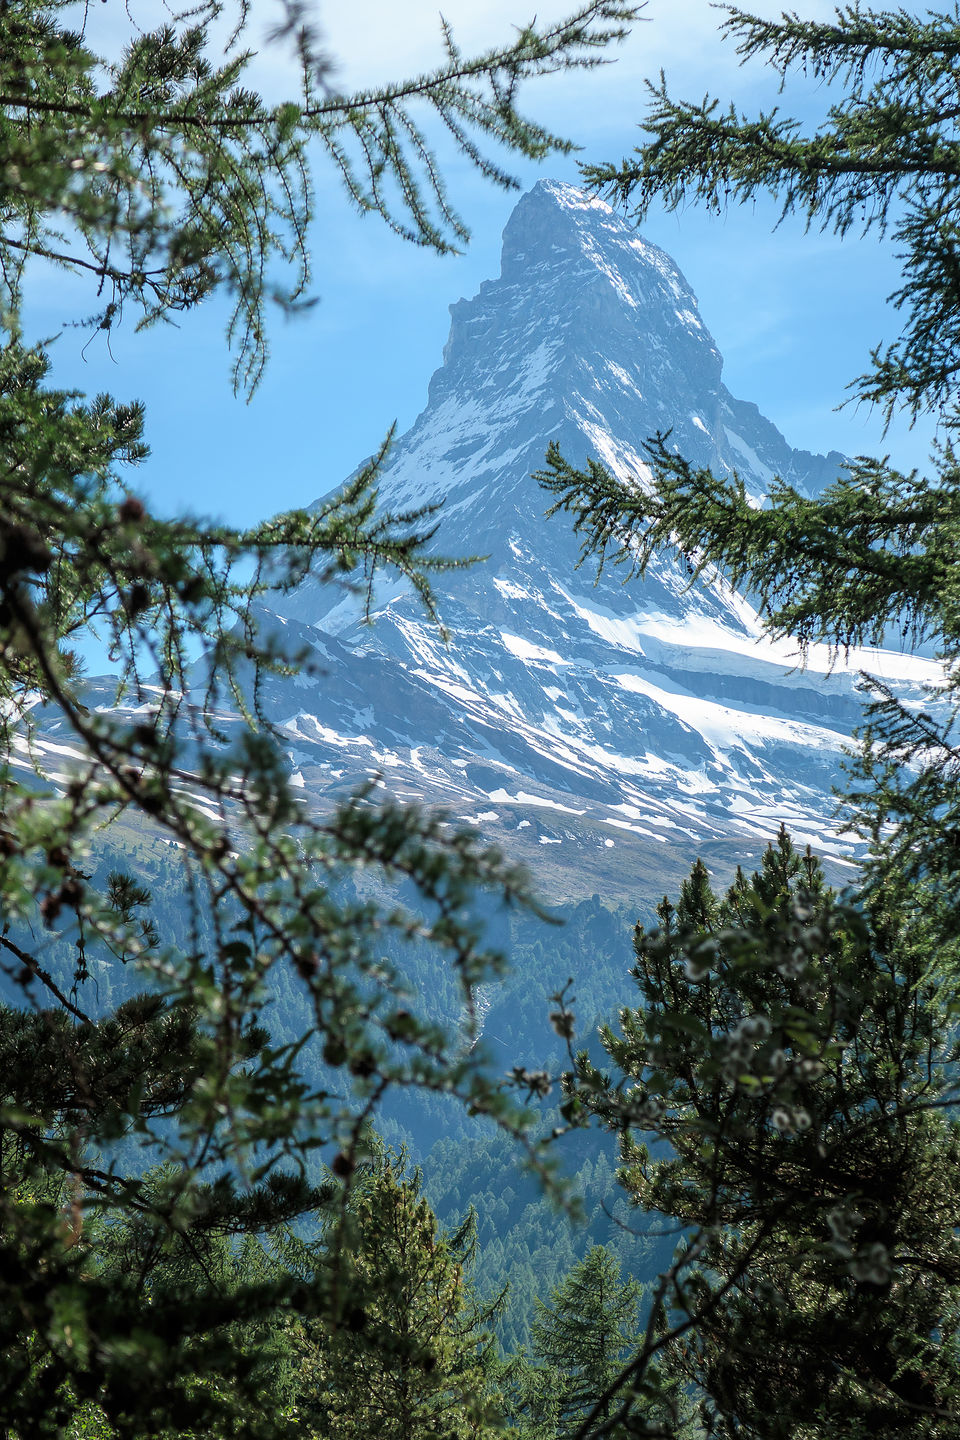 Matterhorn from the AHV-Weg